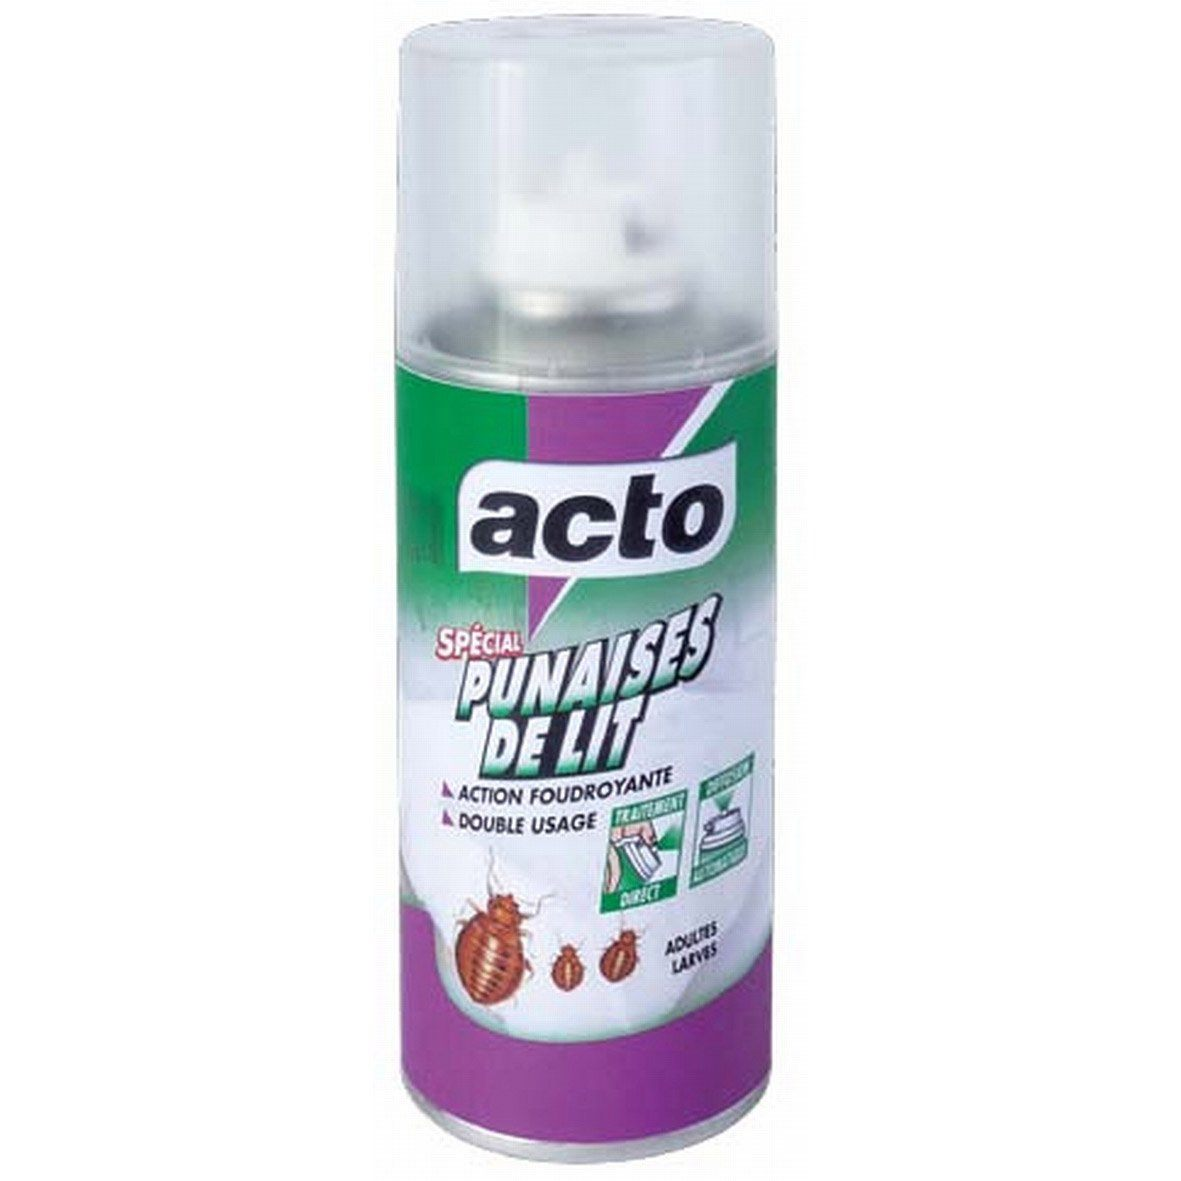 Acto Punaise De Lit Nouveau Fumigene Anti Puce Leroy Merlin Interesting Frais Rideau Collection